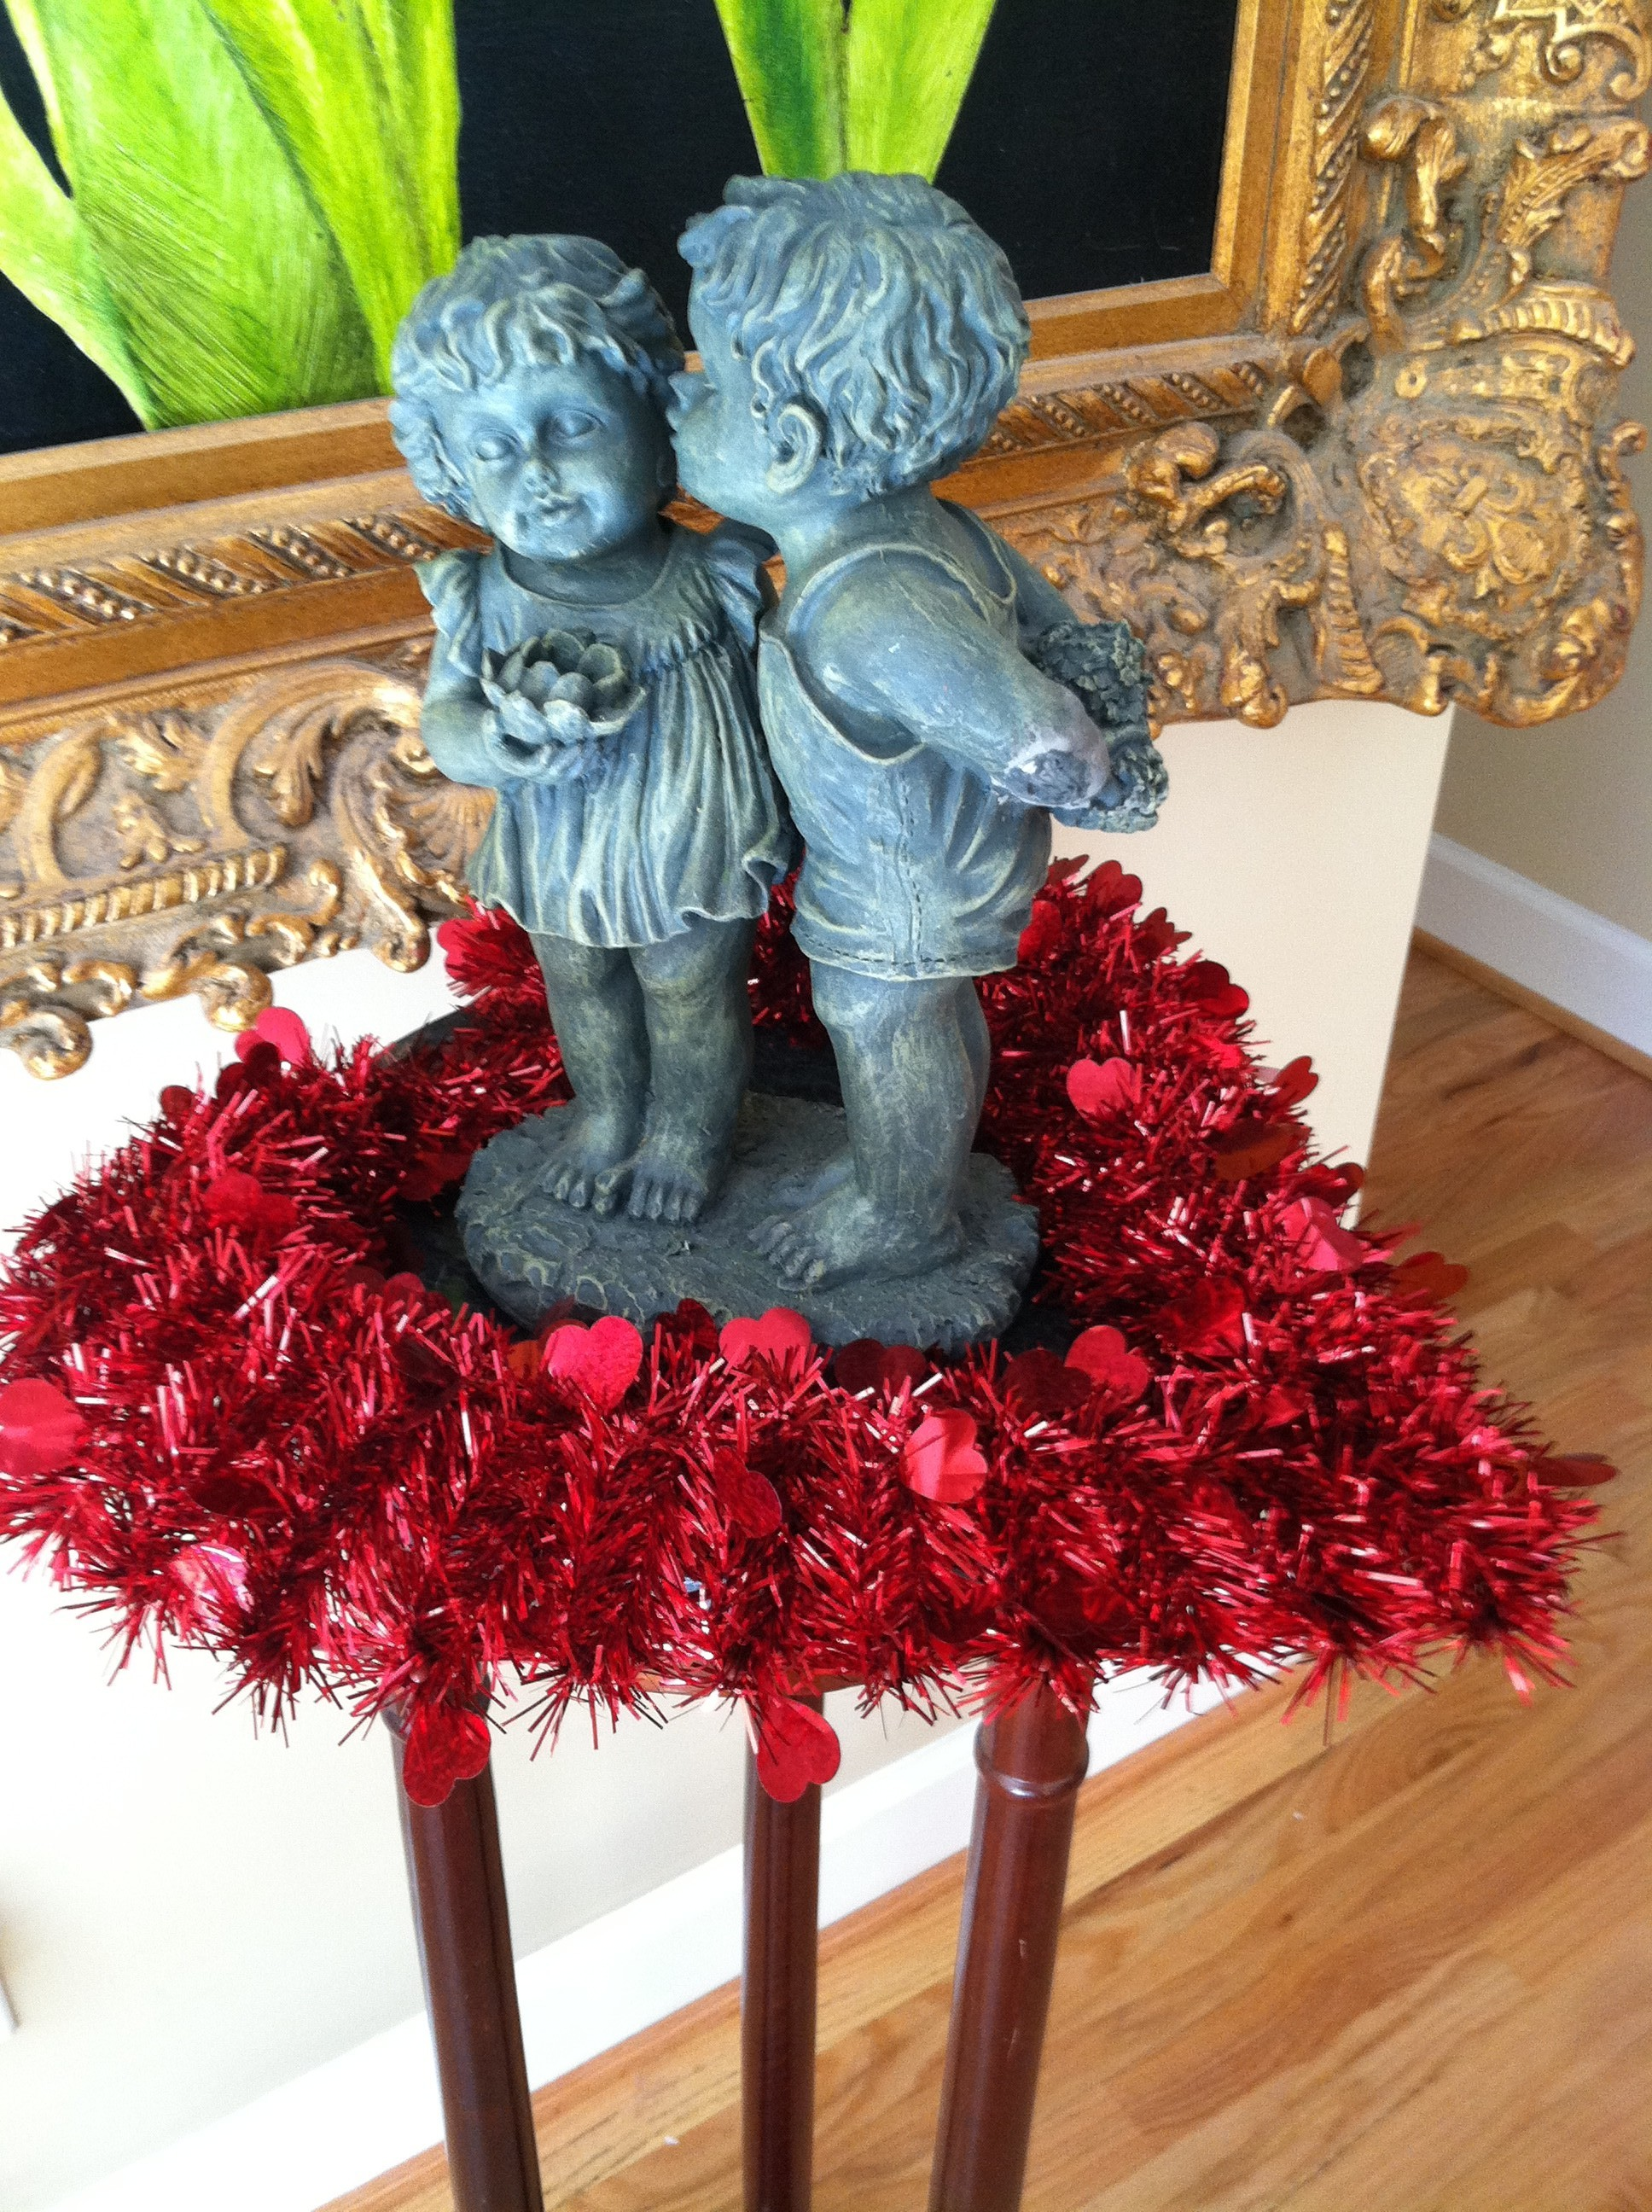 Valentines Wreath And Garden Figurine Decorating